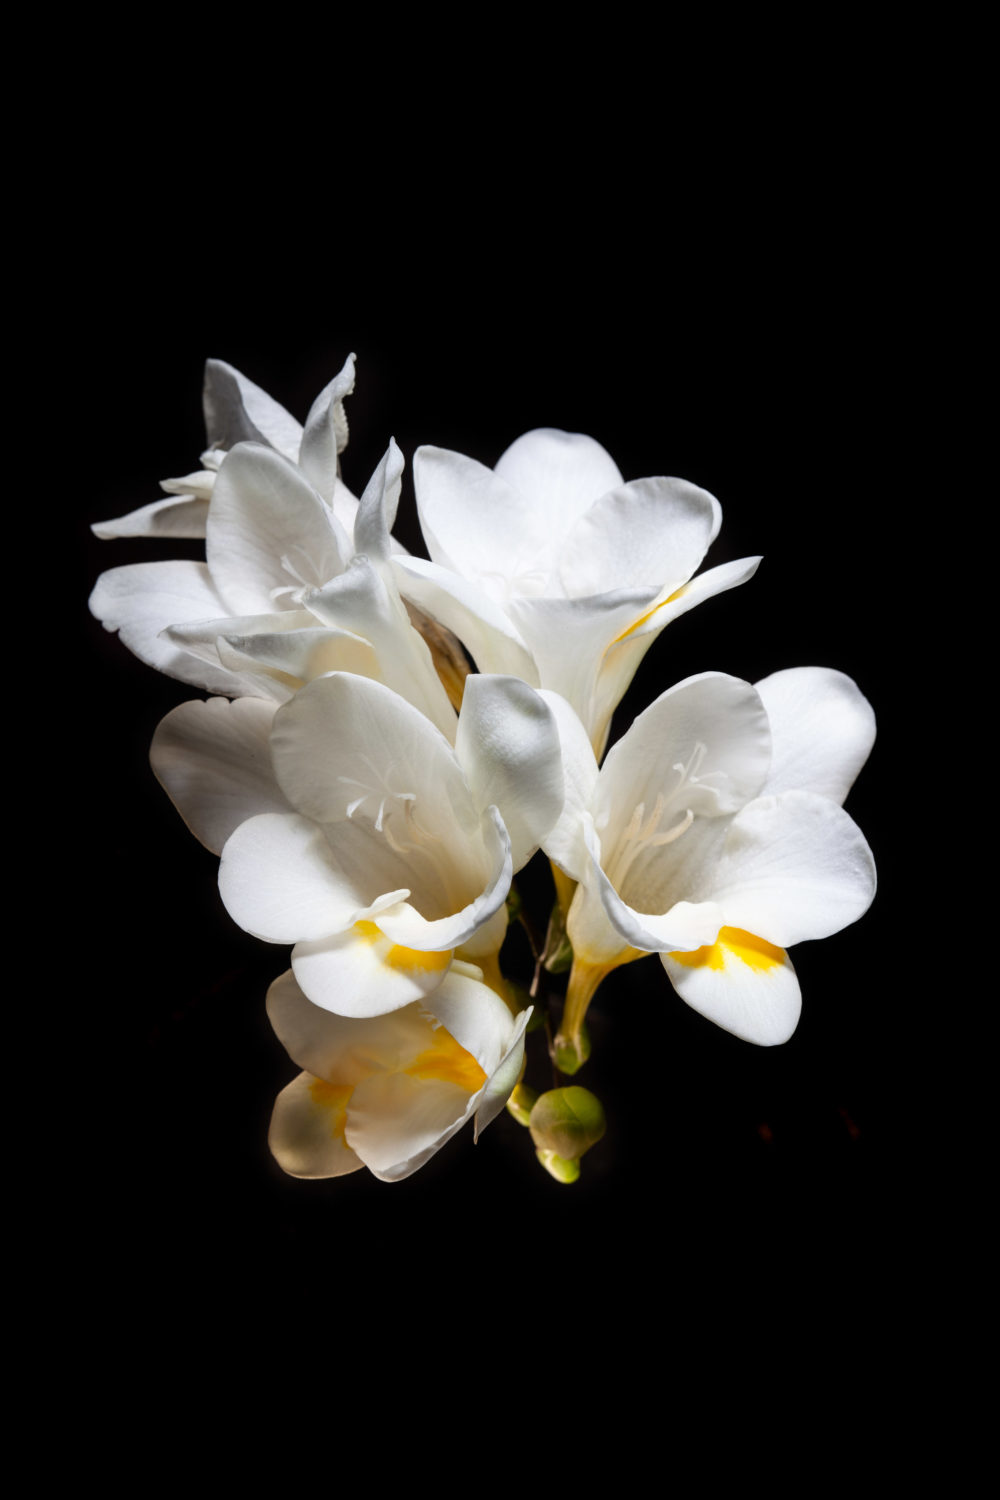 White and yellow freesia flowers isolated on black background